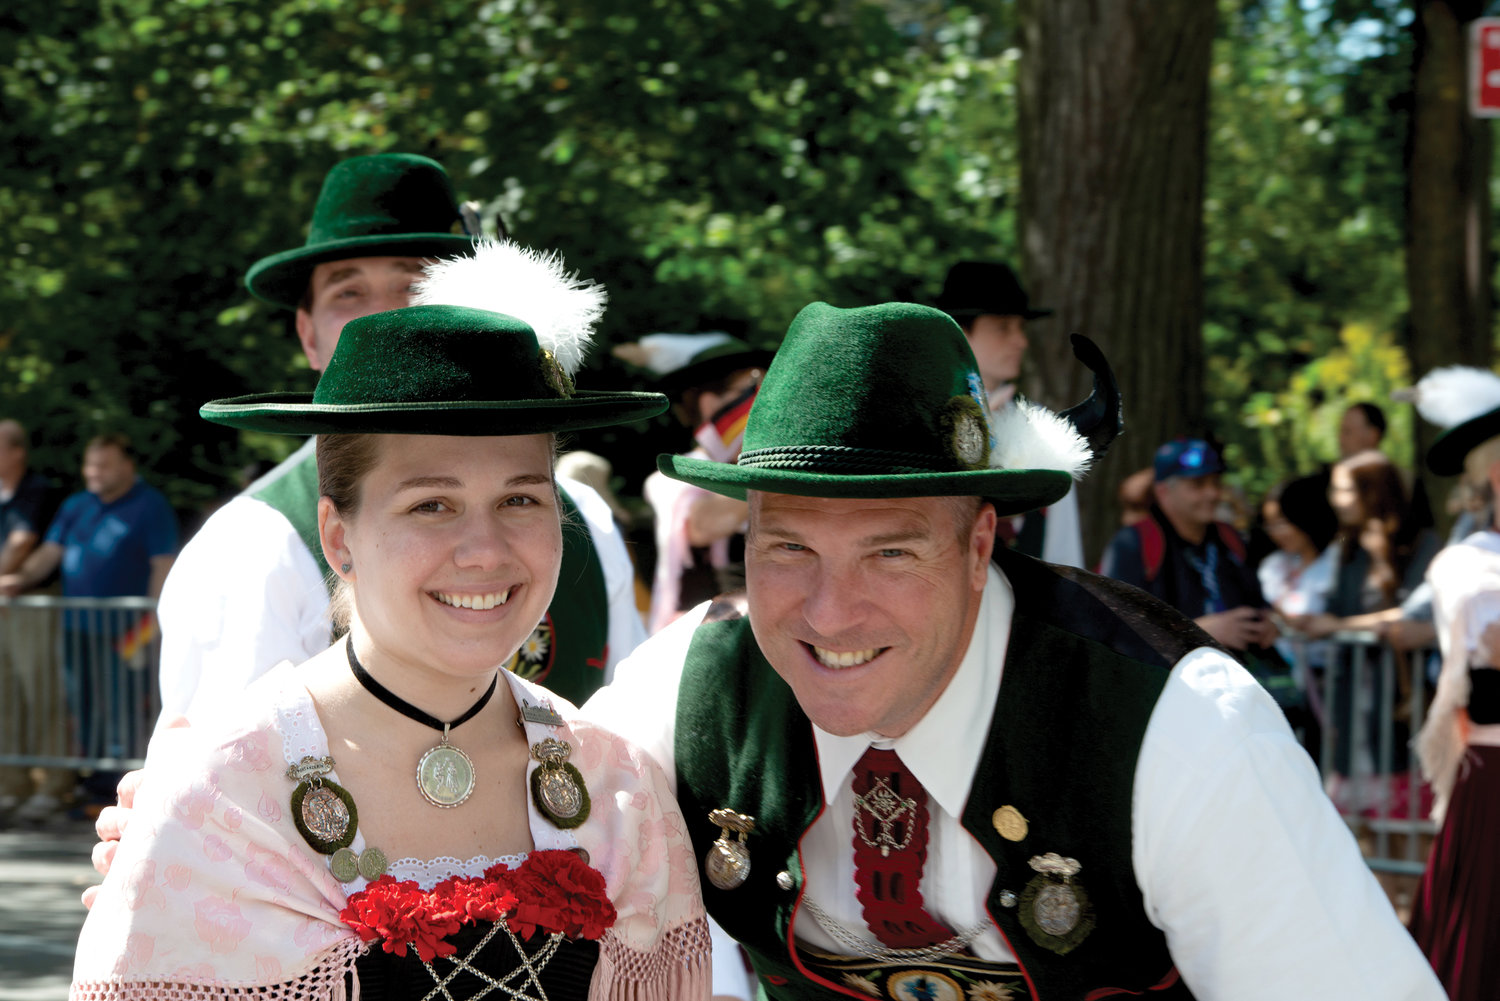 Christina Rom and Tom Schneider of the German folk-dancing group, S.V.V. Original Enzian, march up Fifth Avenue in Manhattan at the 62nd annual German-American Steuben Parade New York Sept. 21.